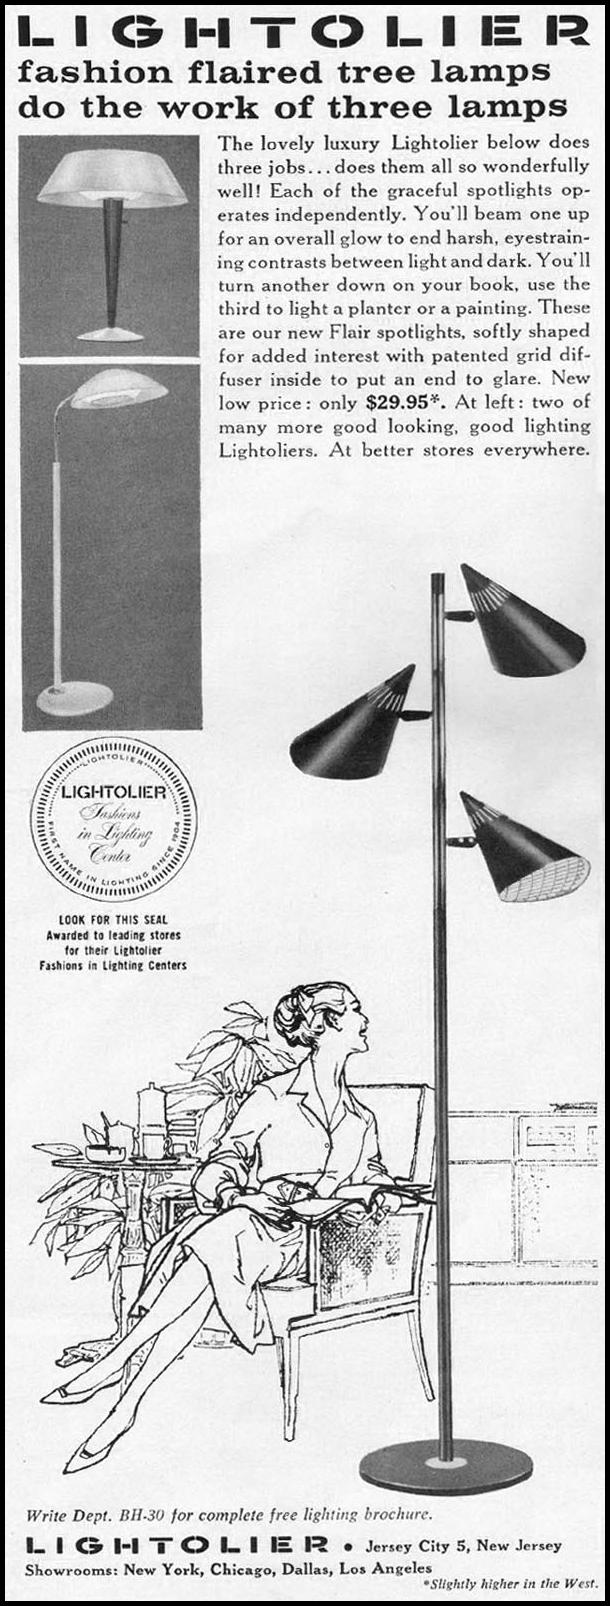 LIGHTOLIER LIGHTING BETTER HOMES AND GARDENS 03/01/1960 p. 146